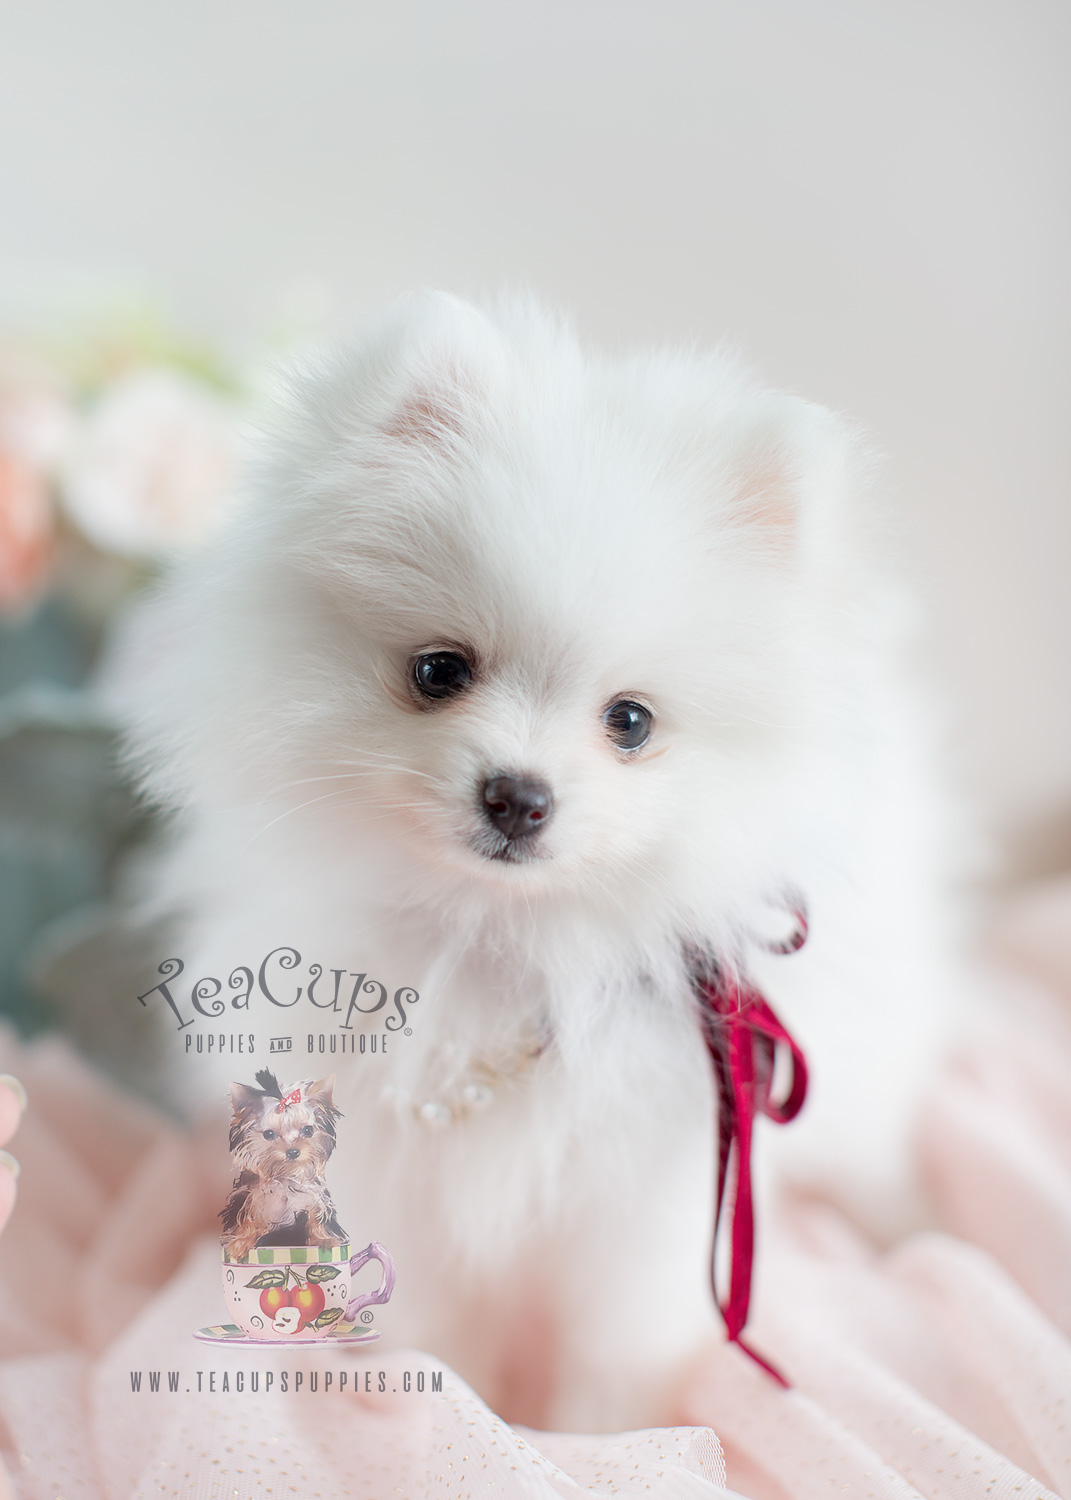 Teacup Puppies and Pomeranians For Sale